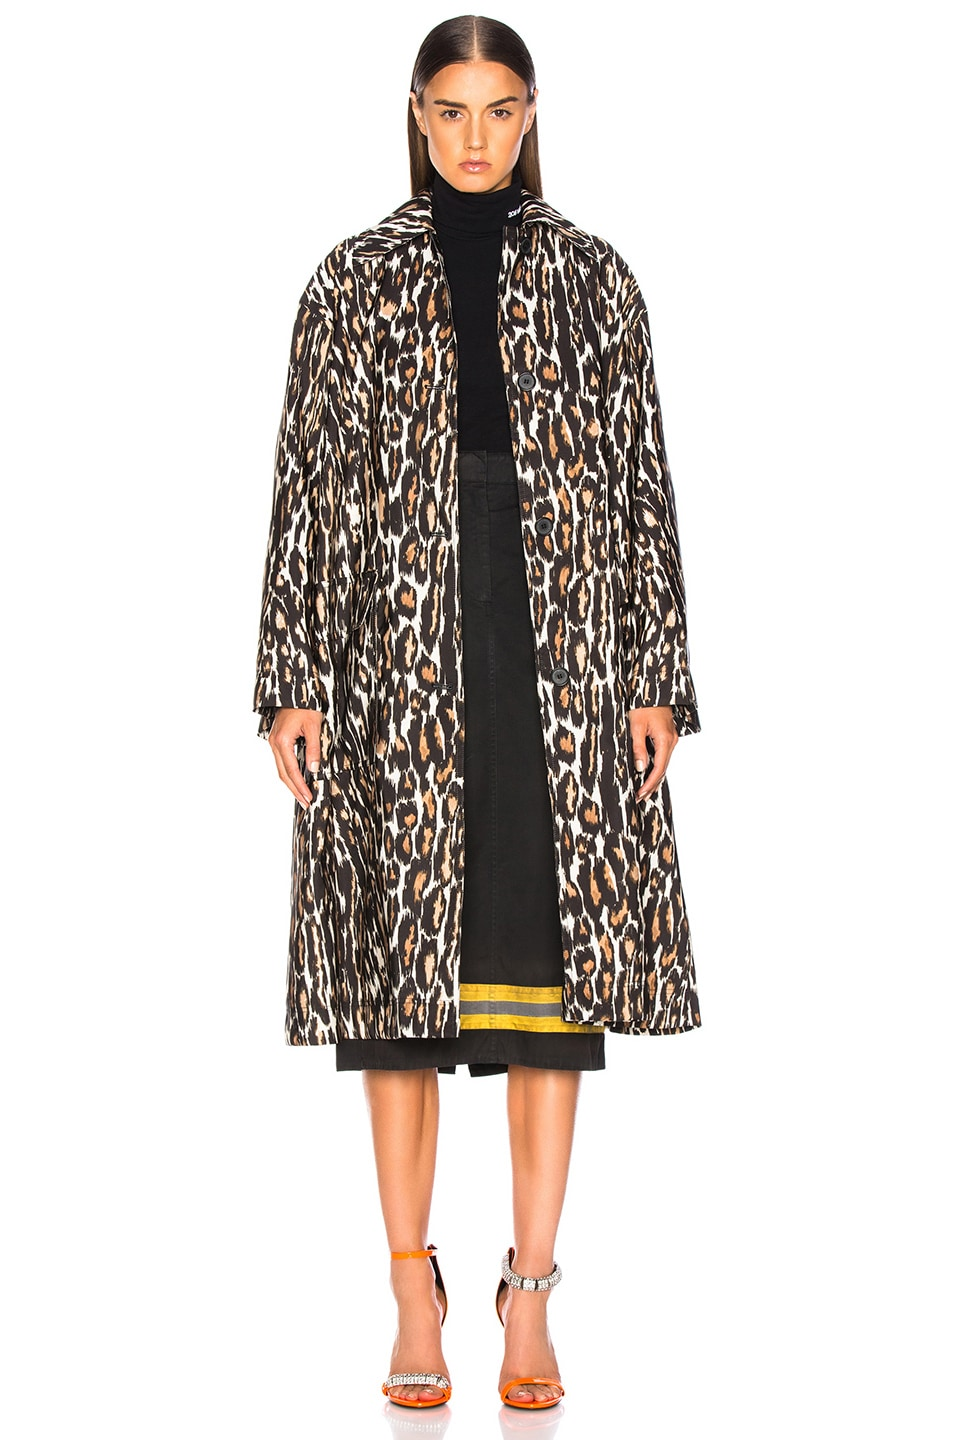 Image 2 of CALVIN KLEIN 205W39NYC Leopard Print Coat in Ivory, Brown & Black